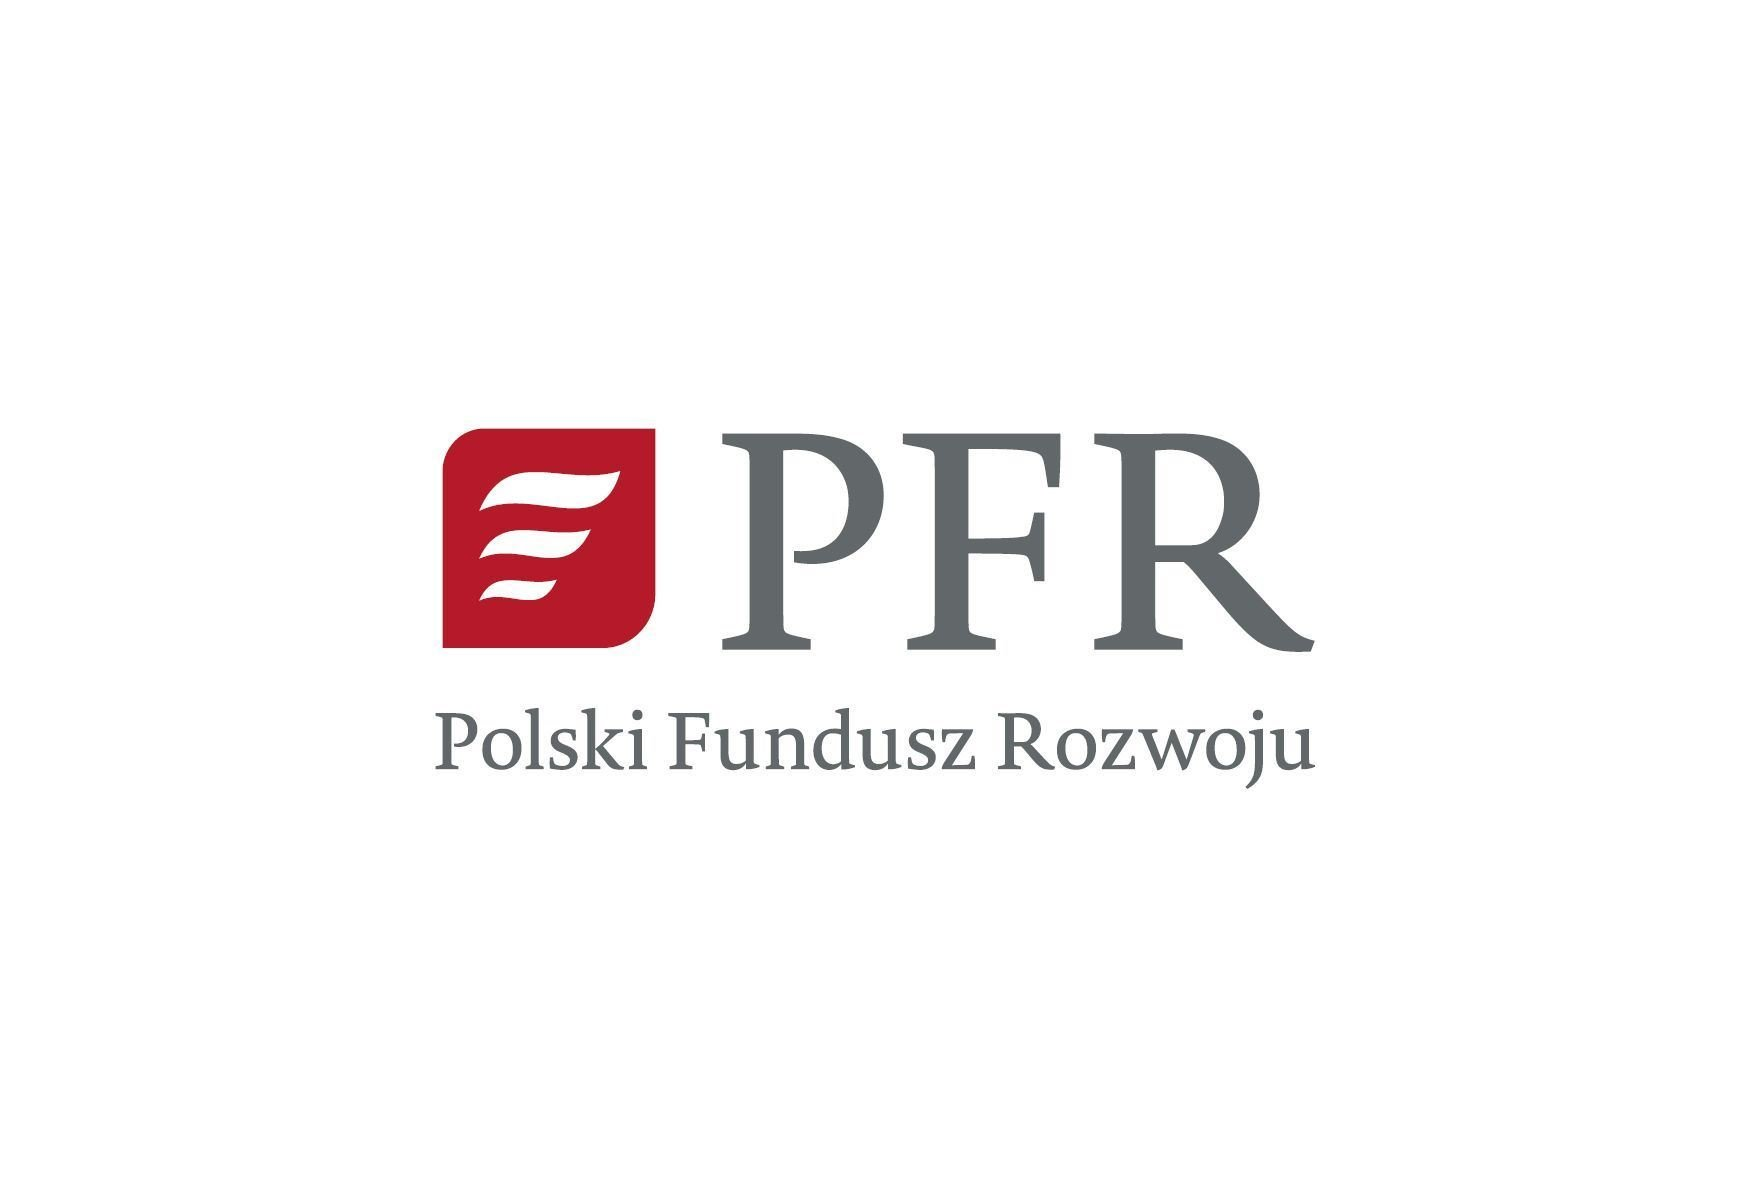 The Management Board of Polski Fundusz Rozwoju S.A. appointed for another term